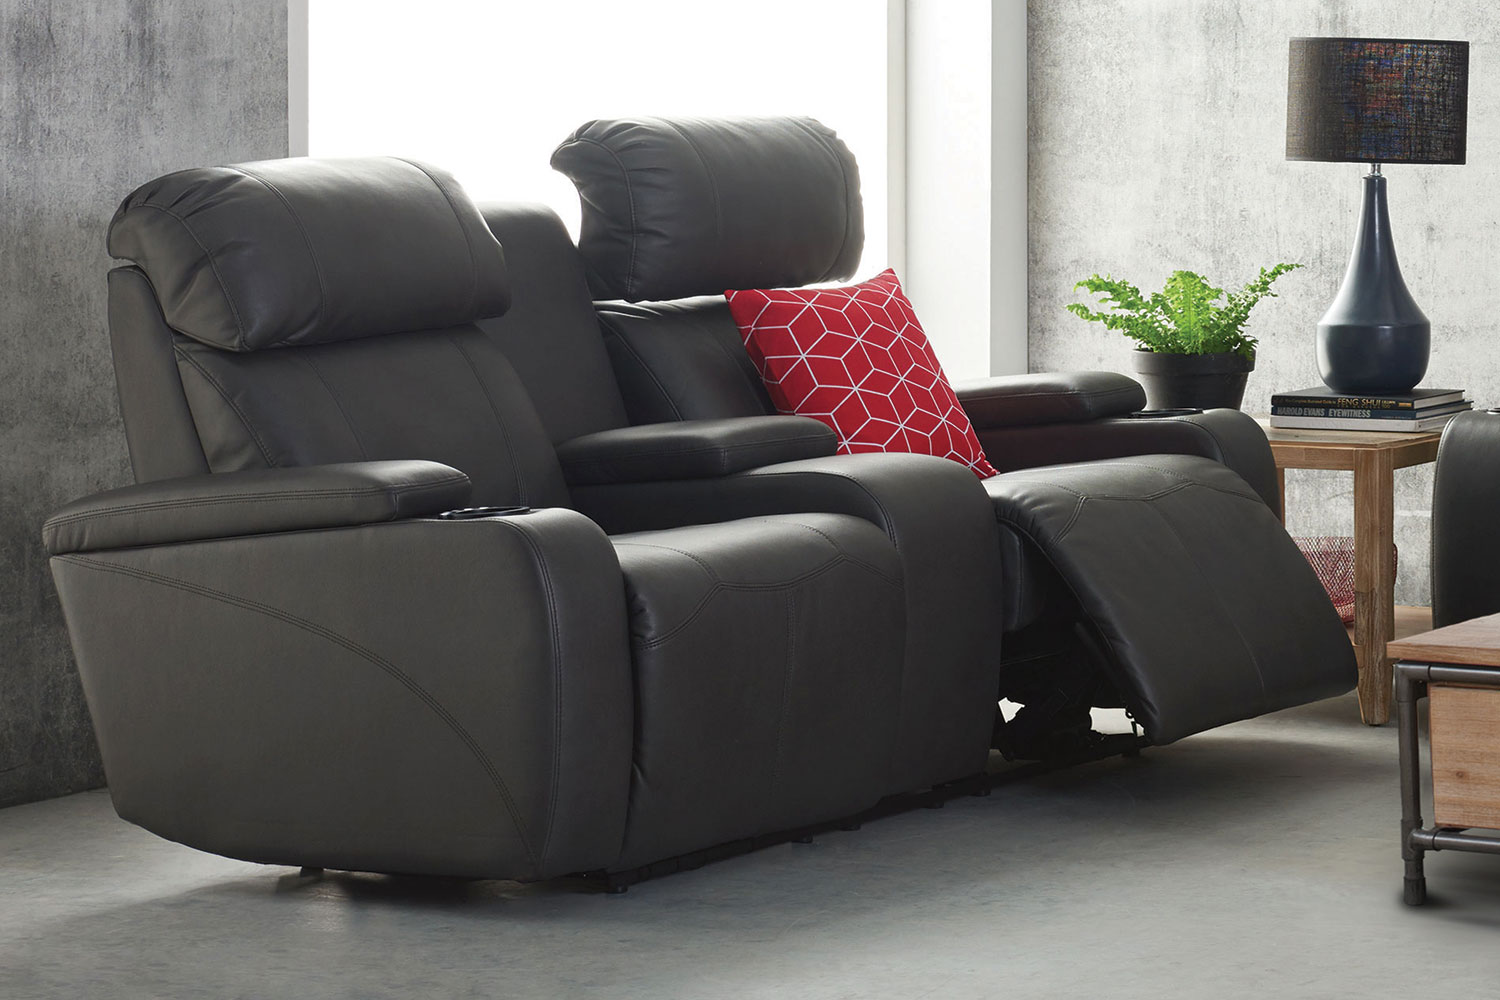 home theater leather sofa reversible furniture protectors for theatre ted boerner design within reach